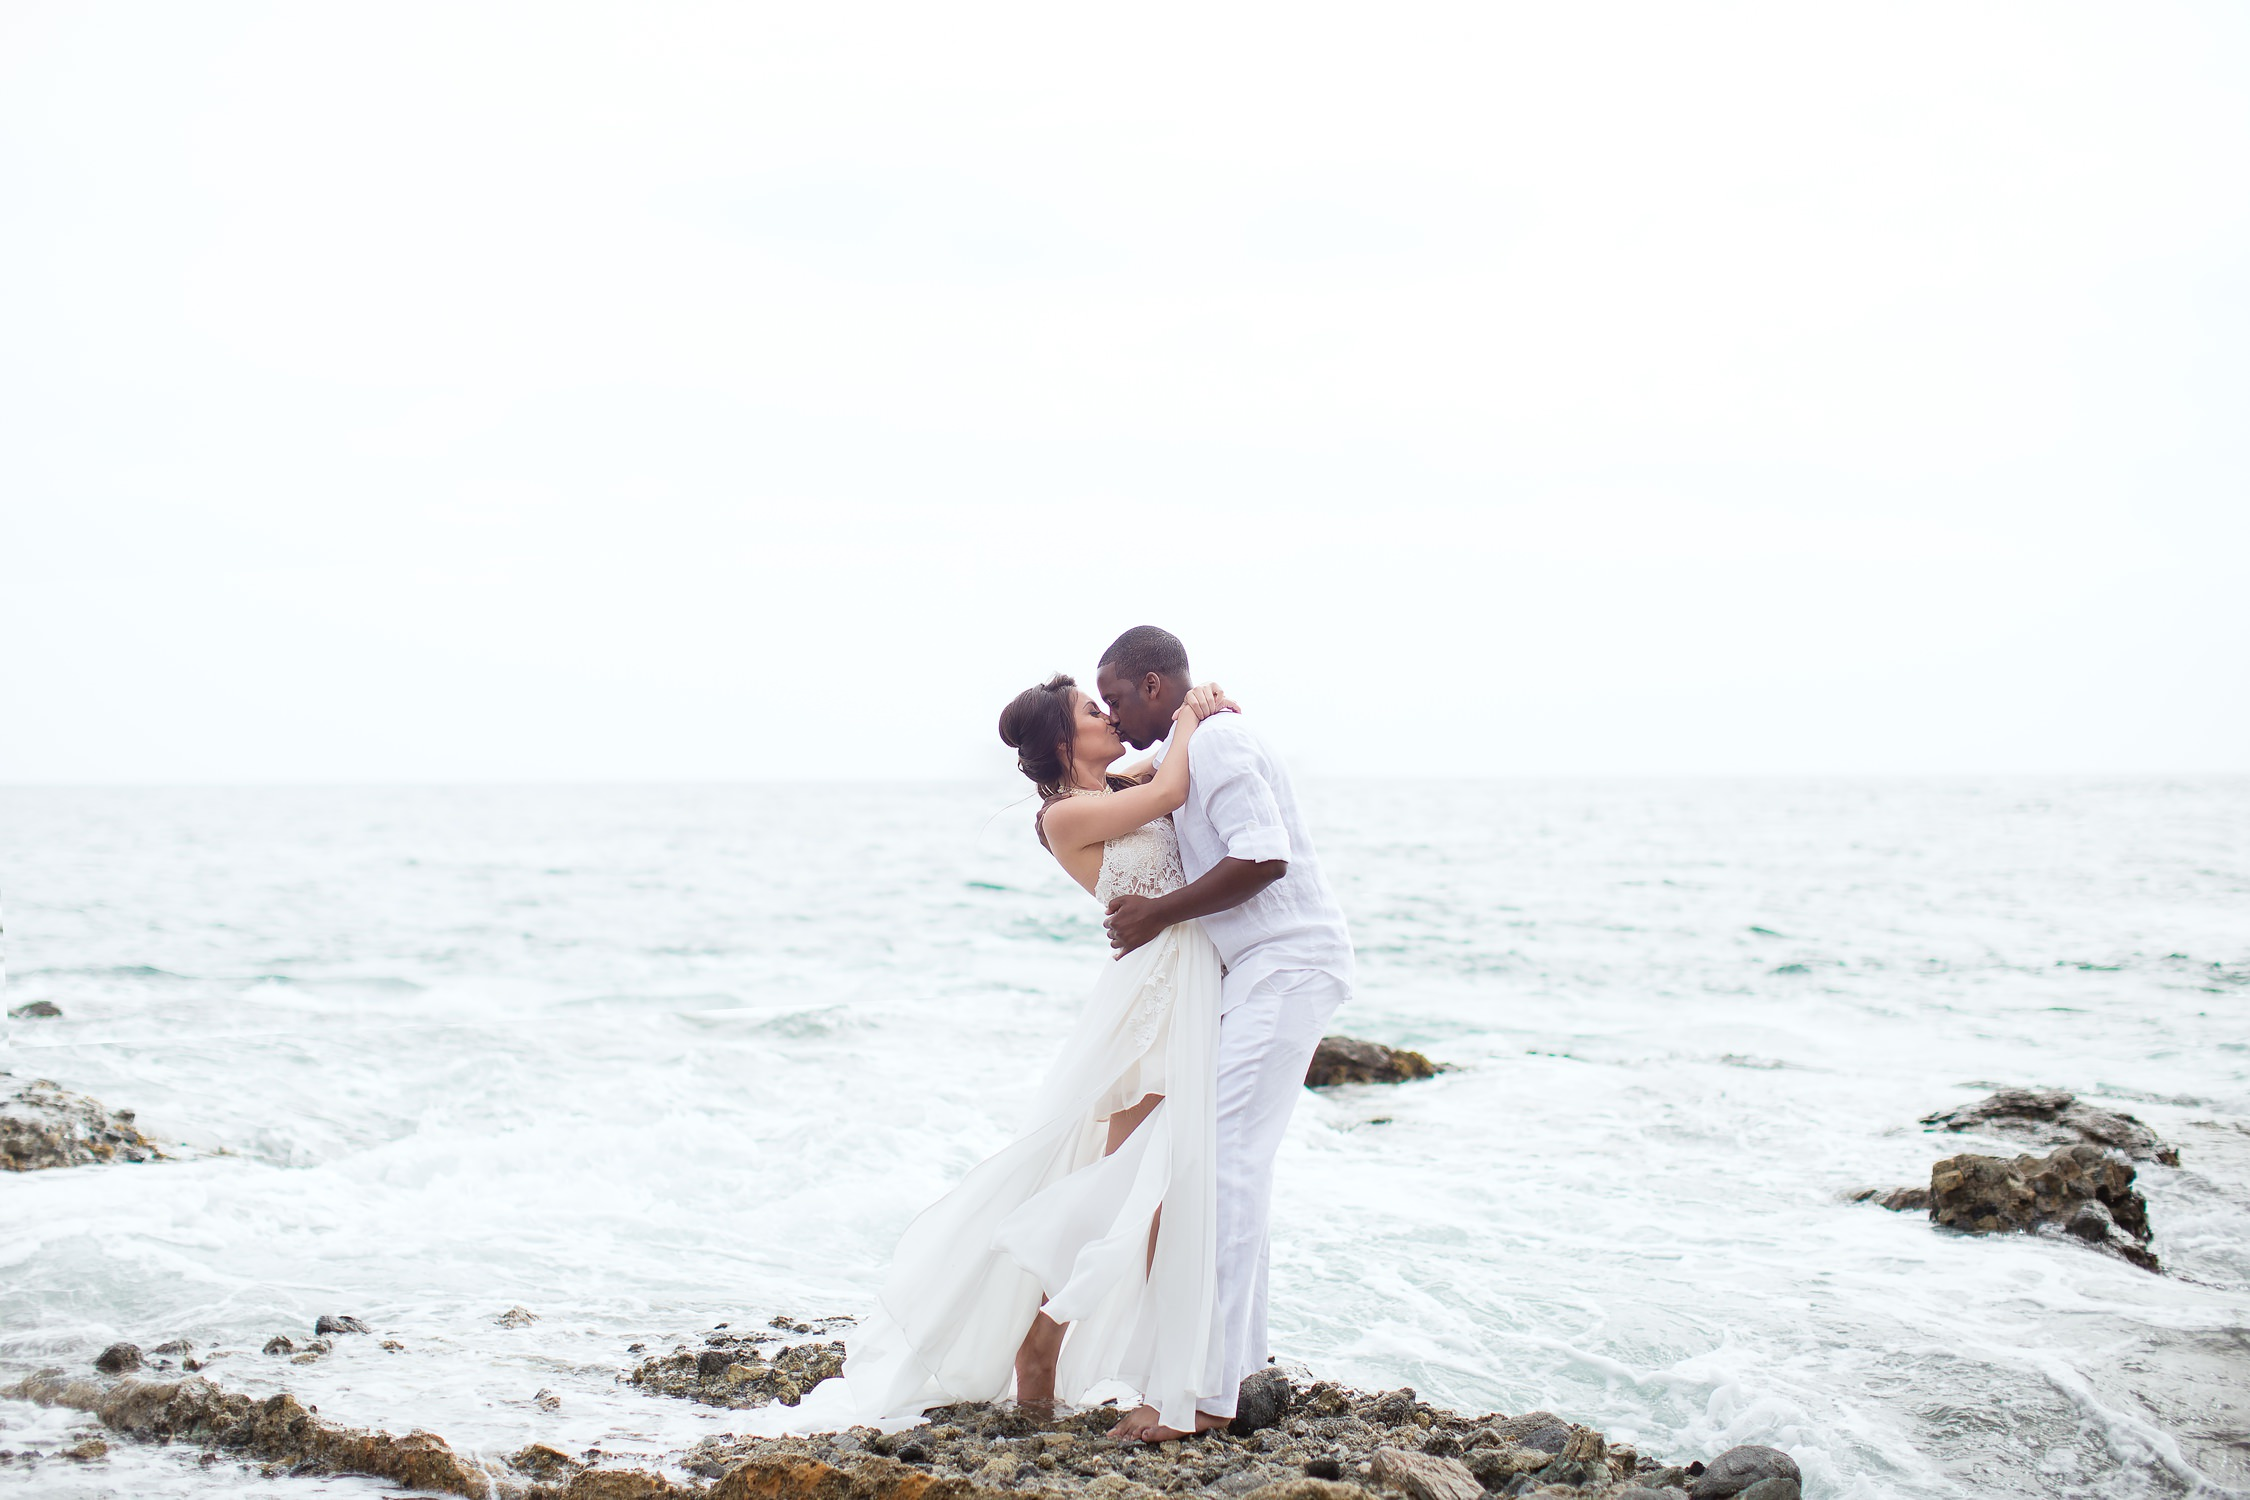 katheline + brandon | Laguna Beach Engagement Session